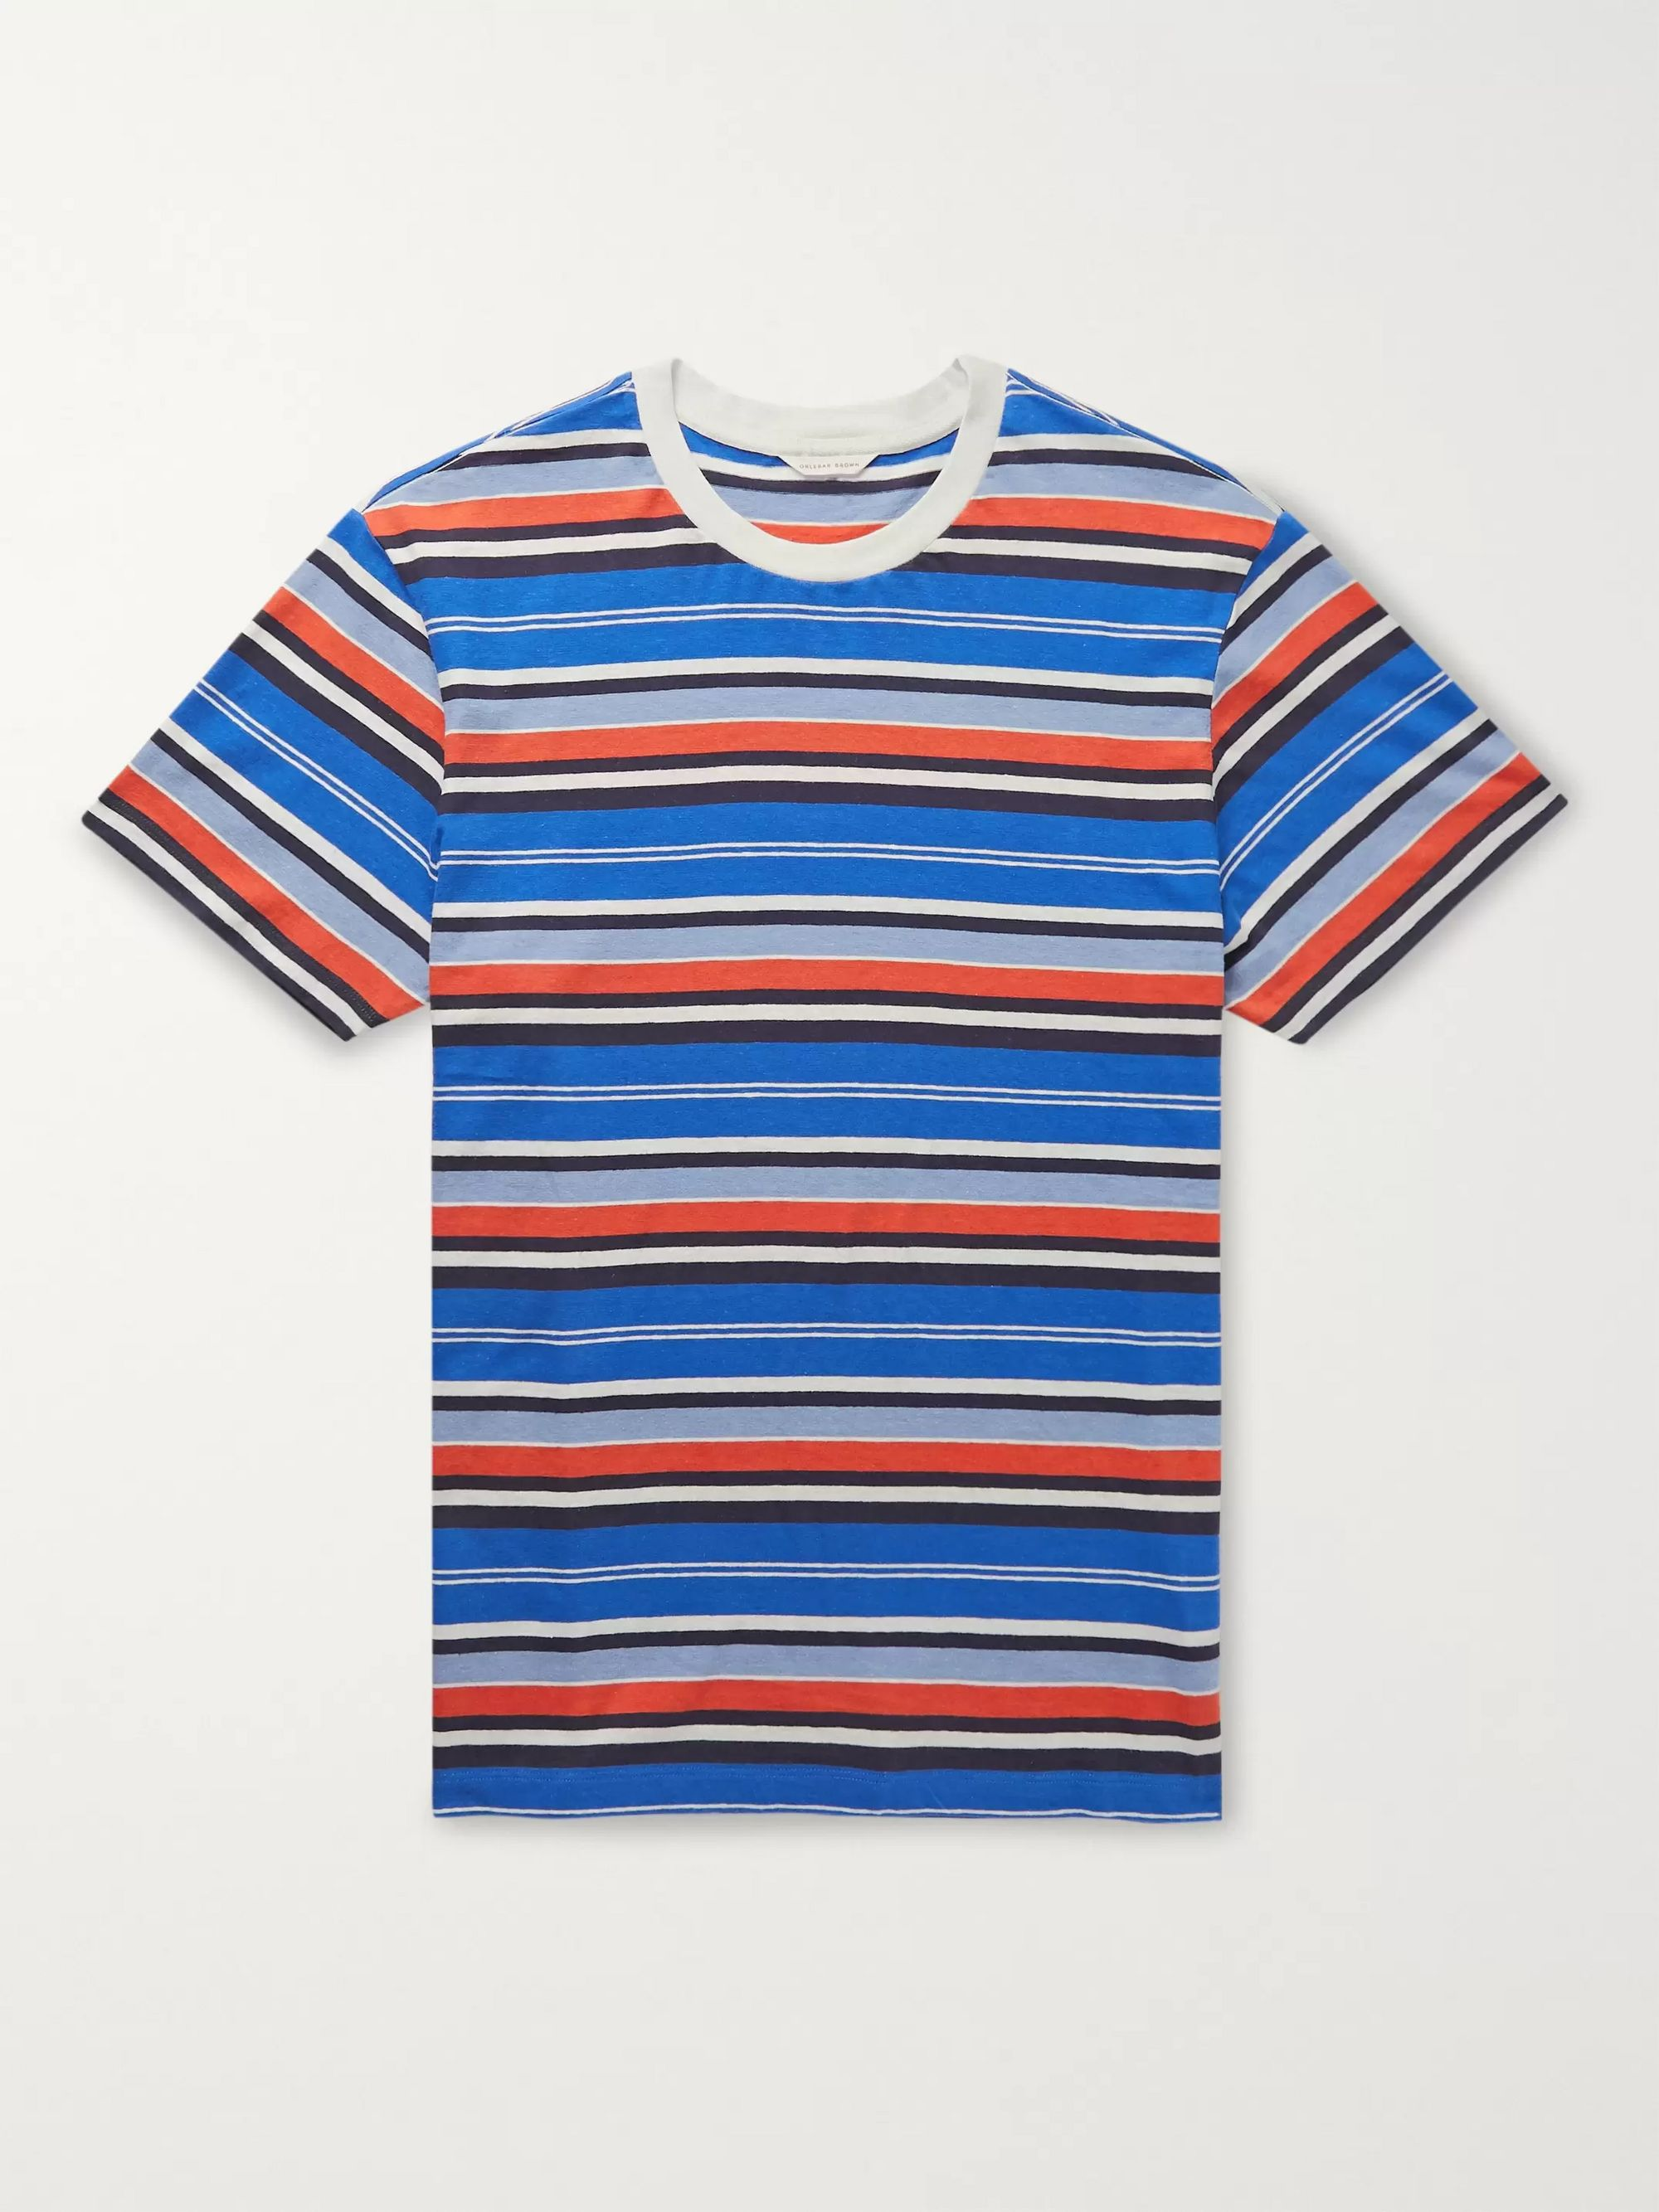 Orlebar Brown Sammy Striped Cotton and Linen-Blend T-Shirt